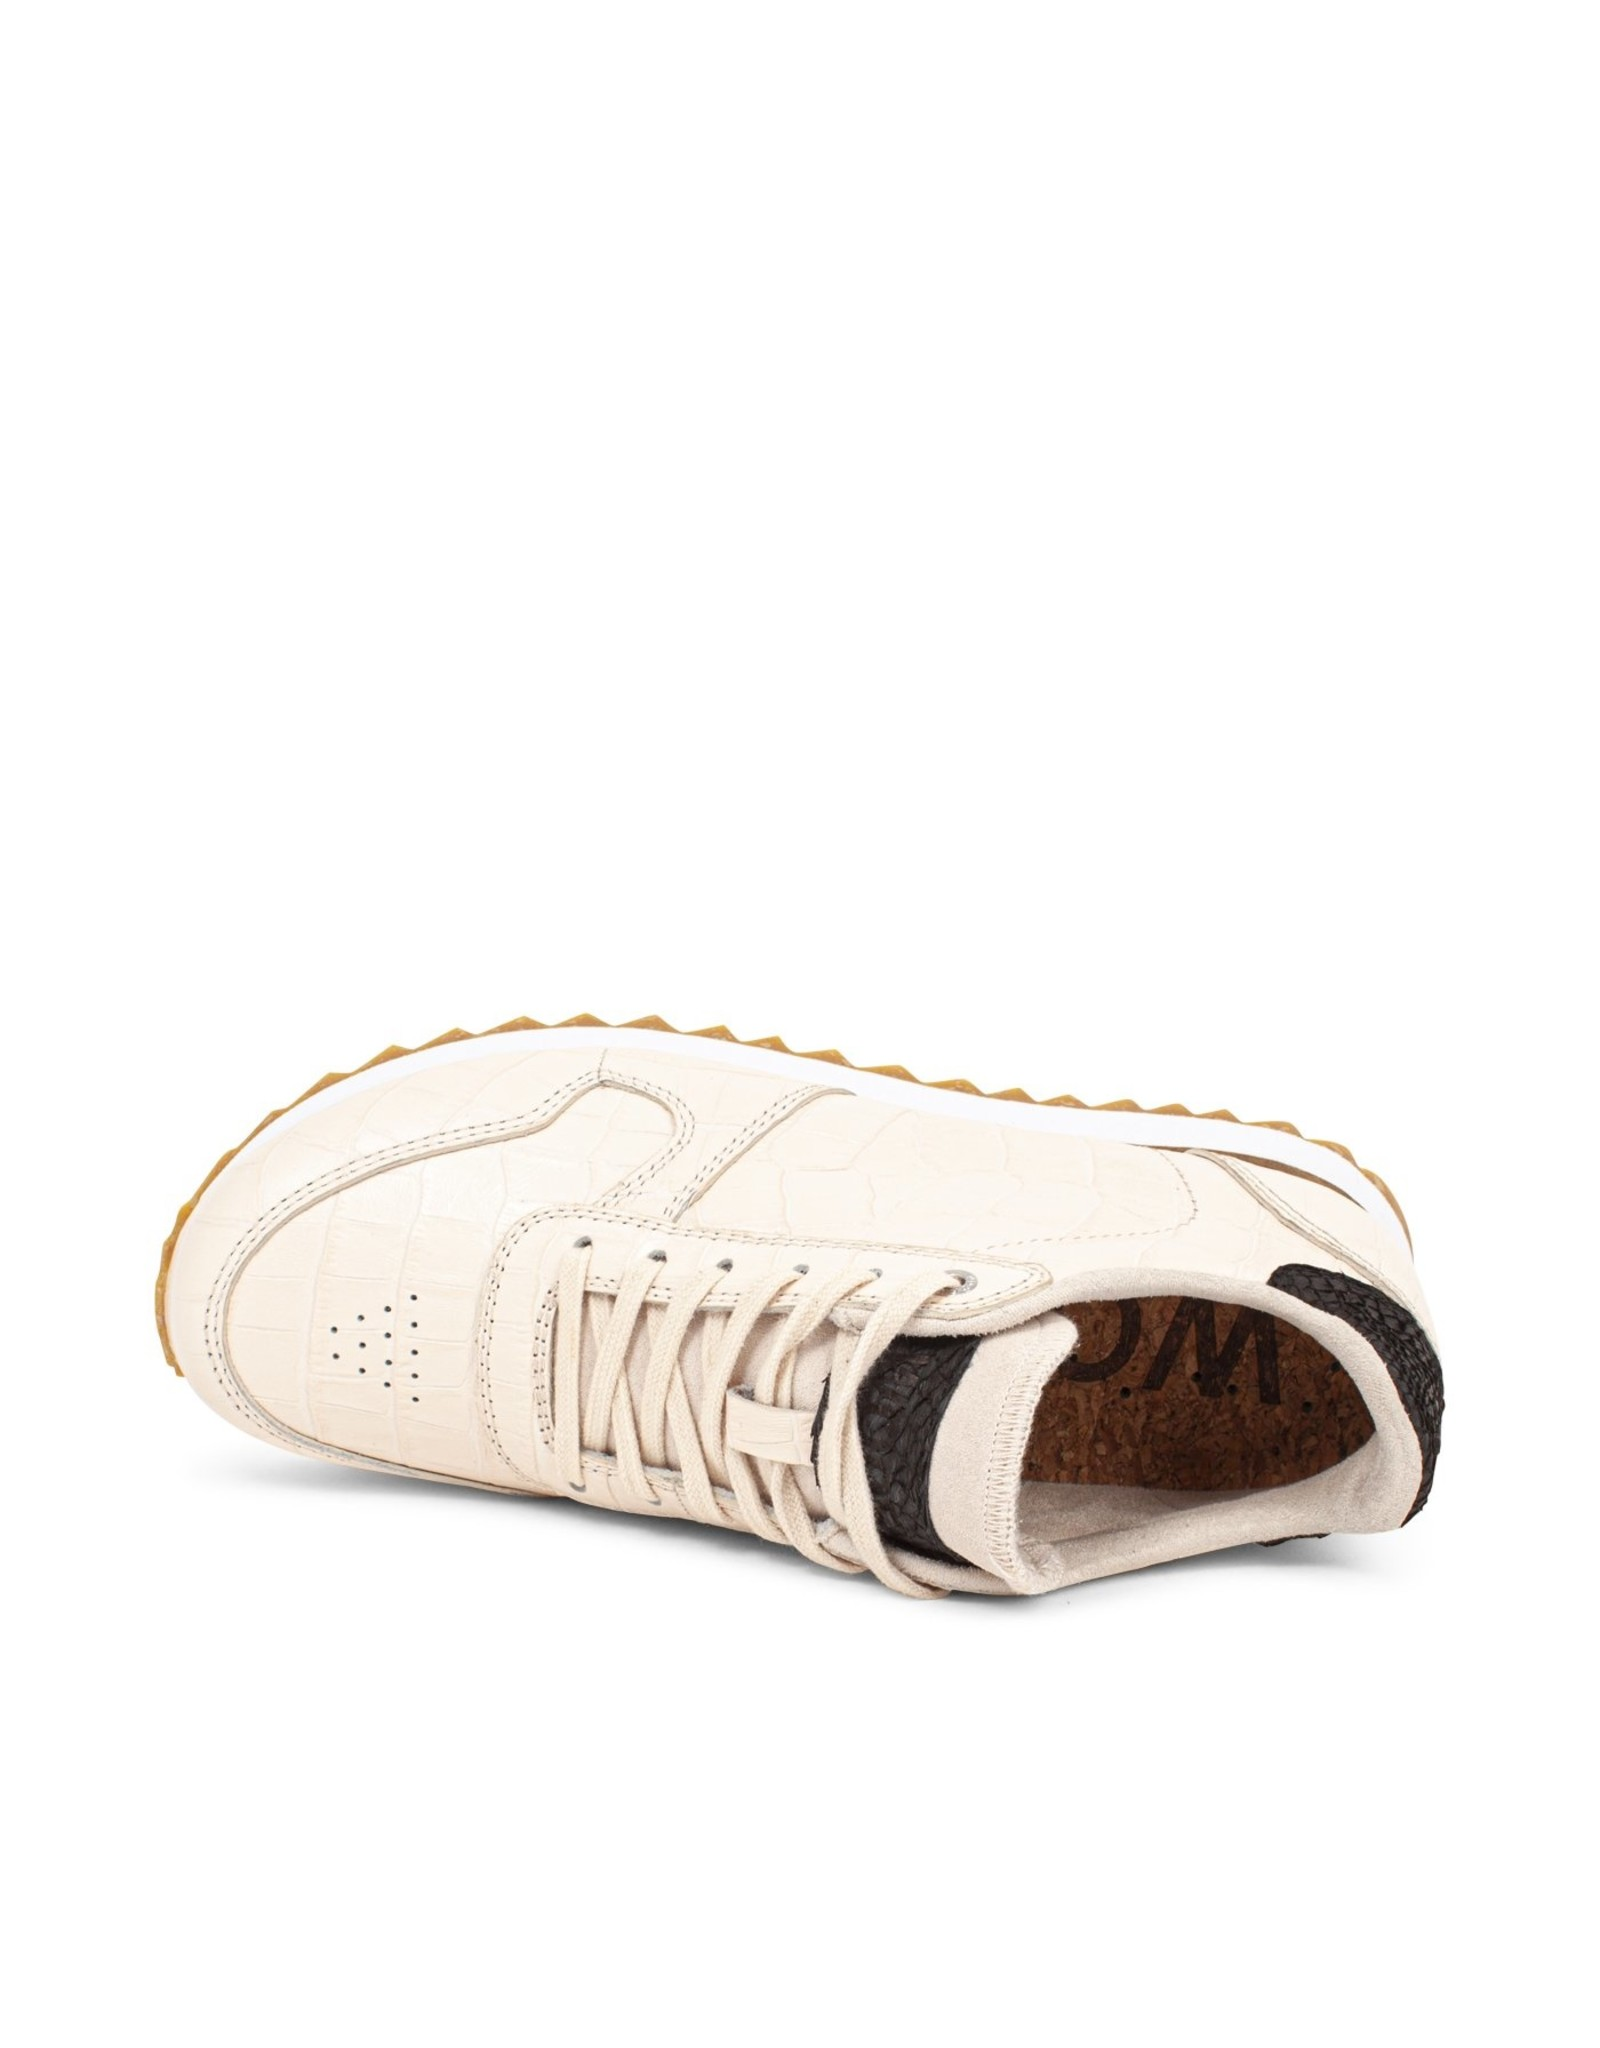 Woden Ydun Croco Shiny Trainer Leather